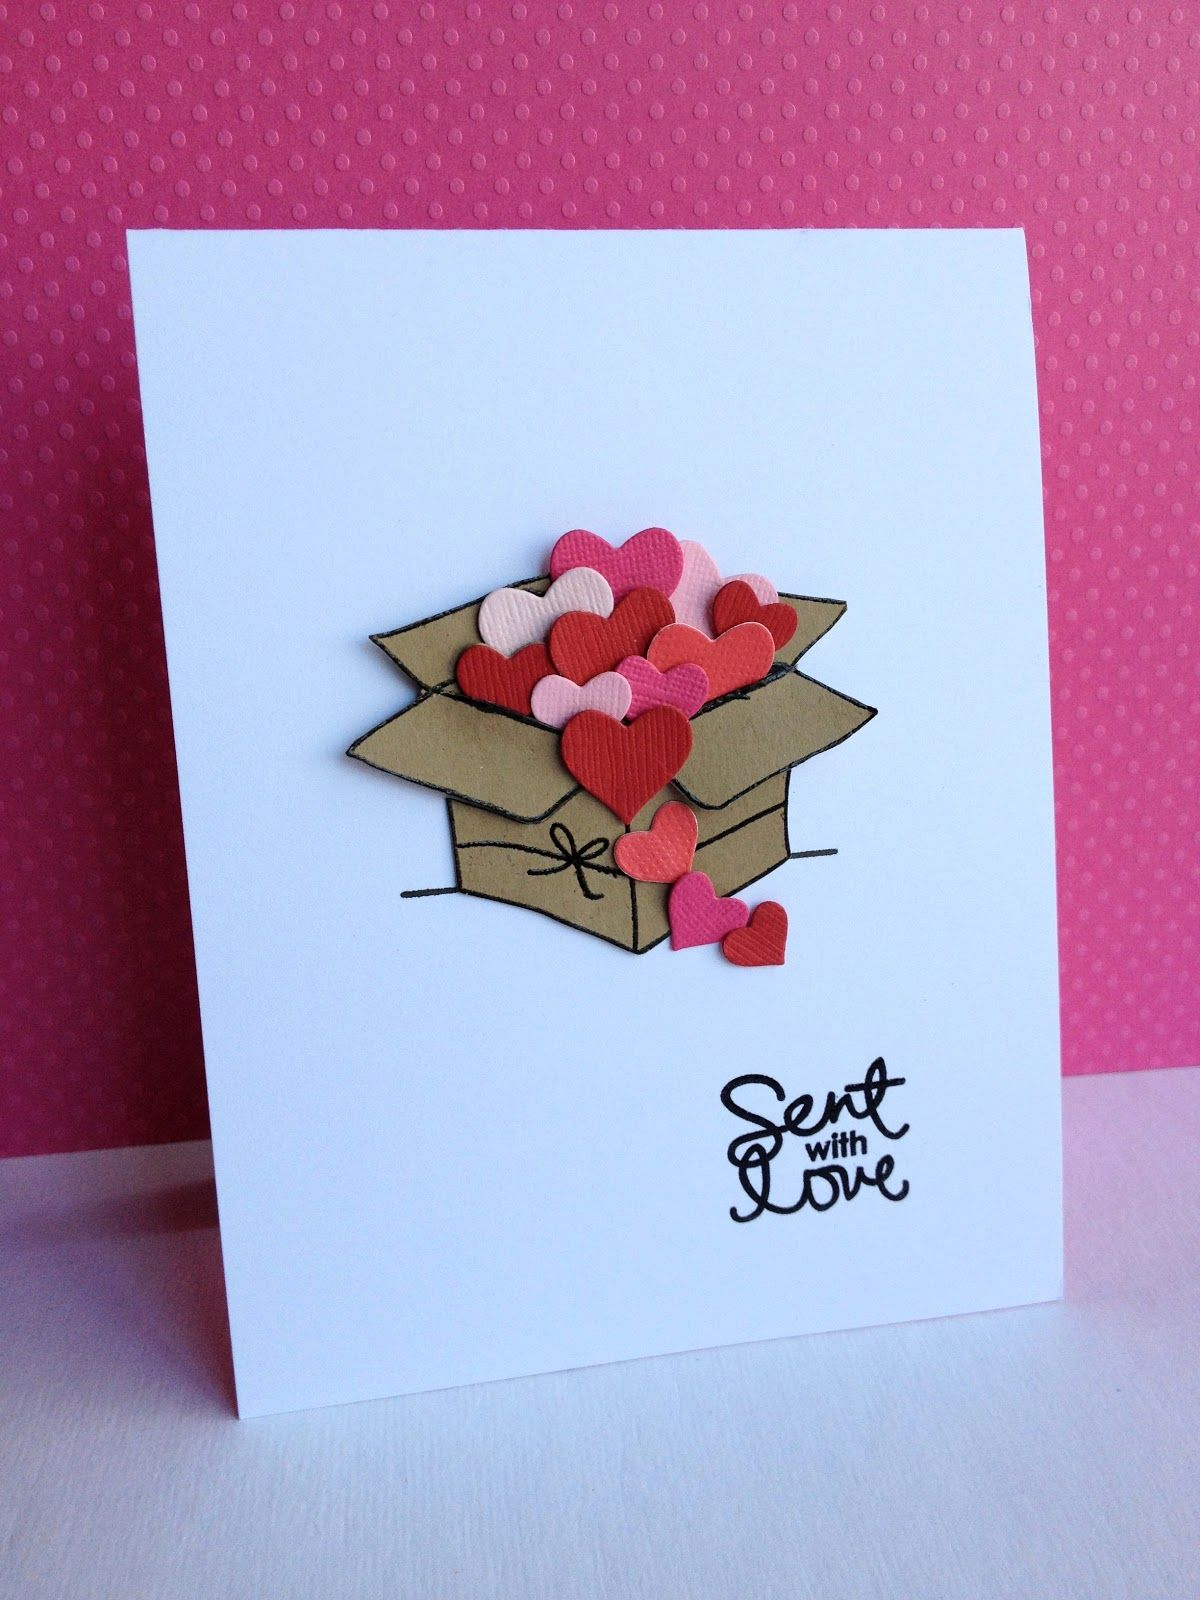 Sent With Love Cards Handmade Valentines Cards Creative Cards